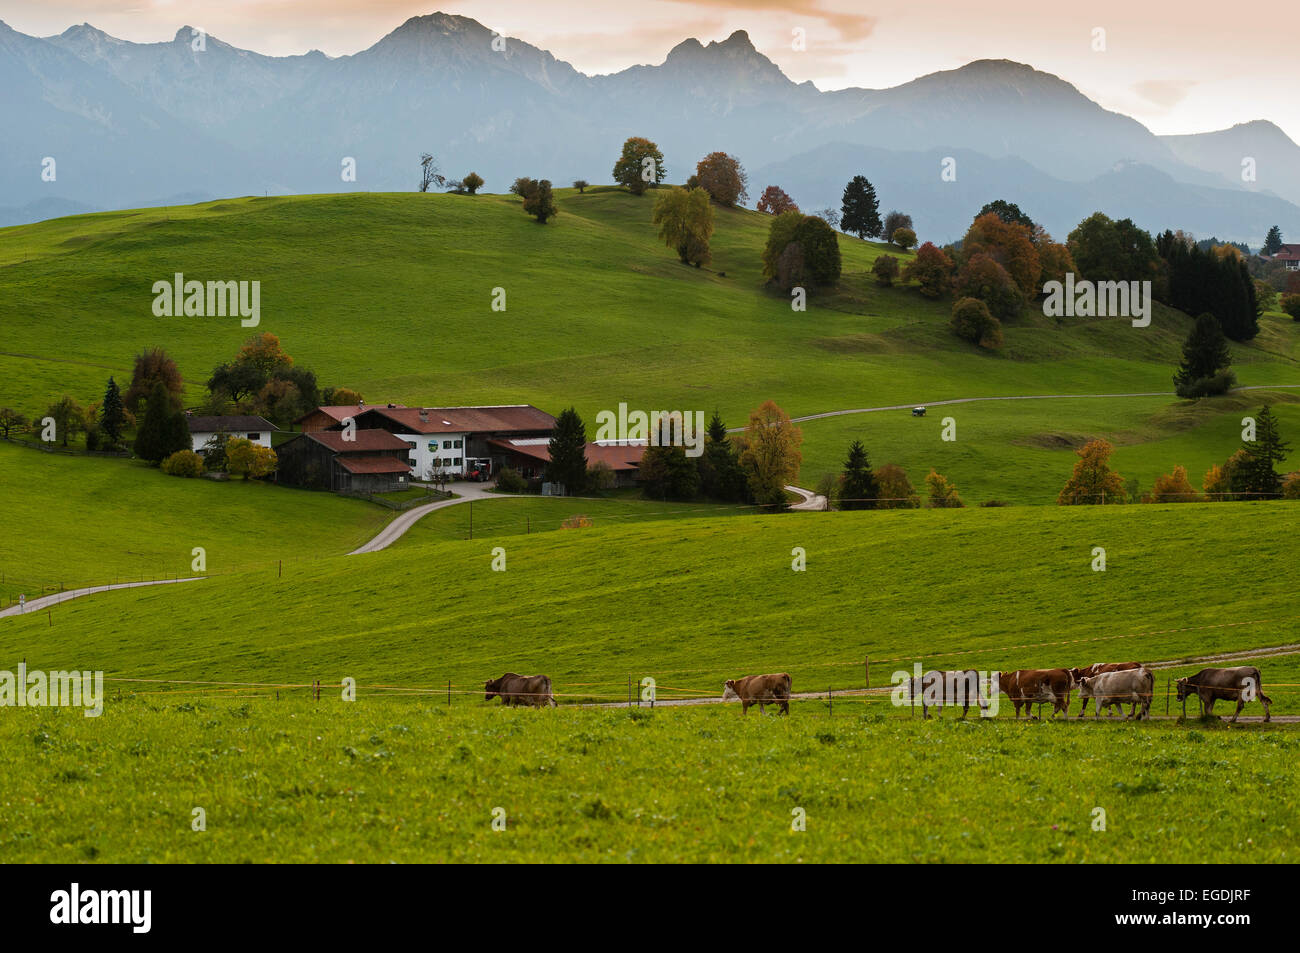 The foothills of the Alps near Steingaden, Upper Bavaria, Bavaria, Germany - Stock Image